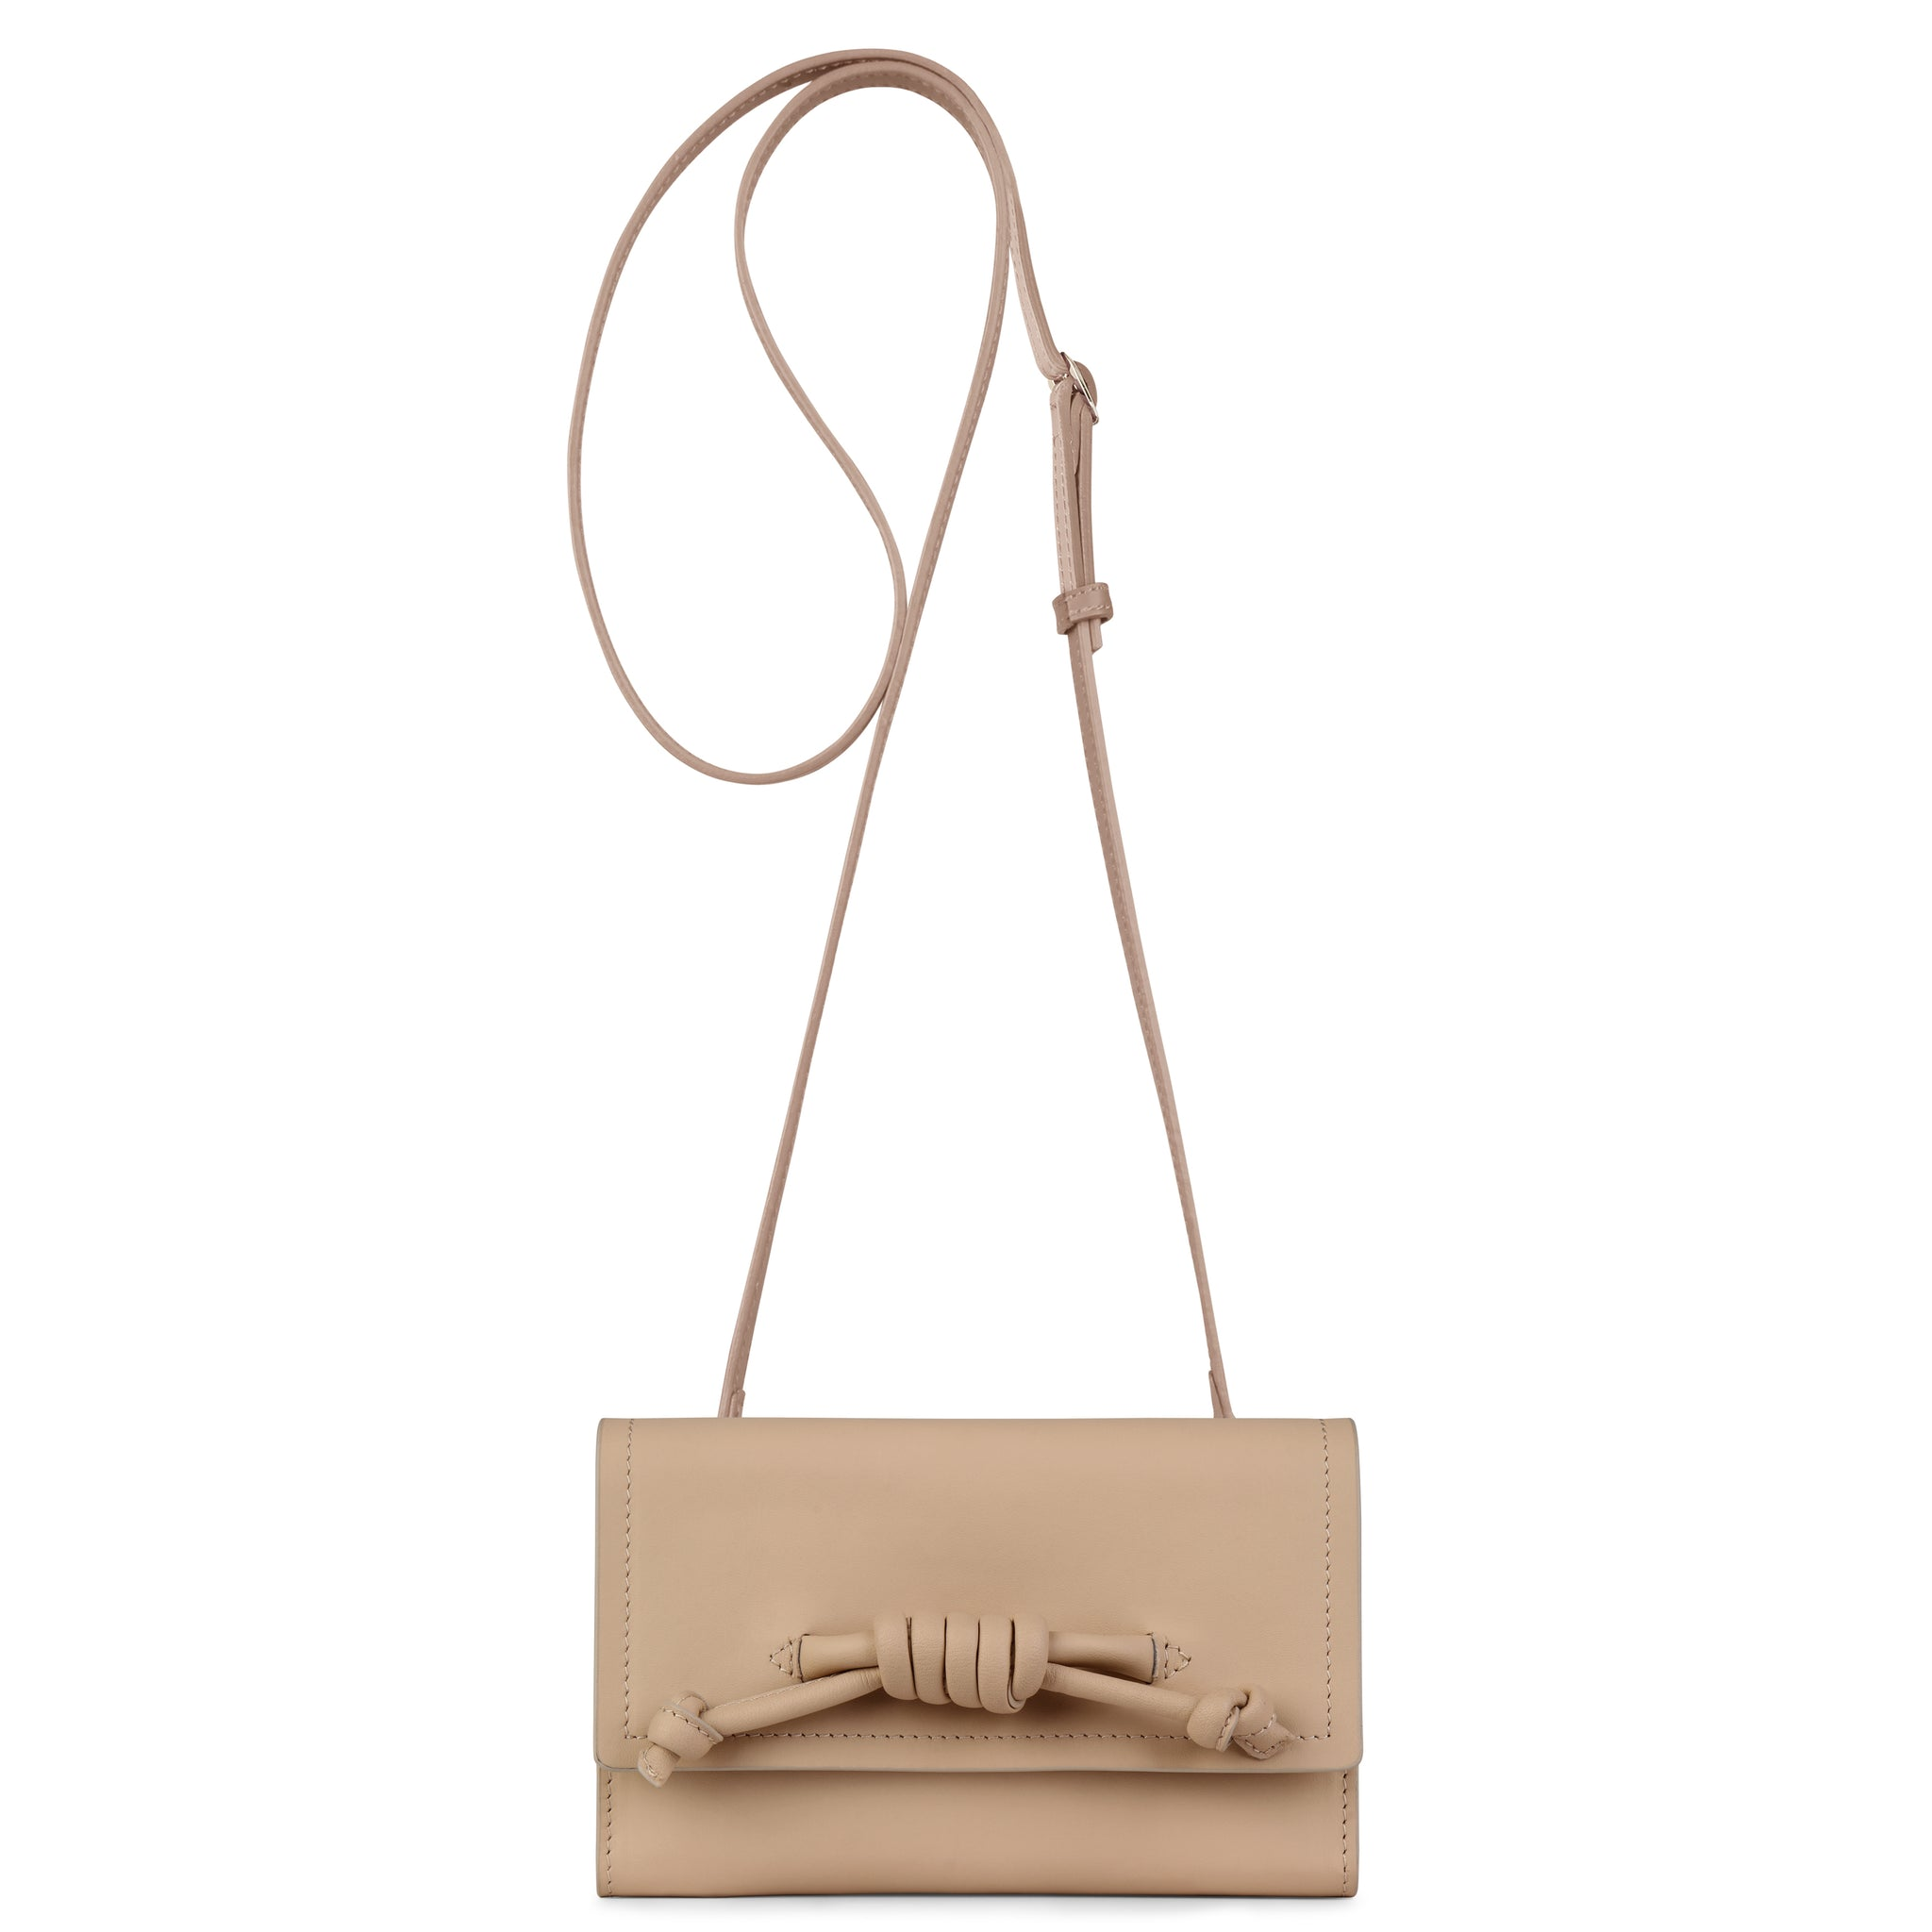 A convertible leather nude phone wallet with a knot detail in front that could be used as a crossbody bag, shown as a crossbody, front image.